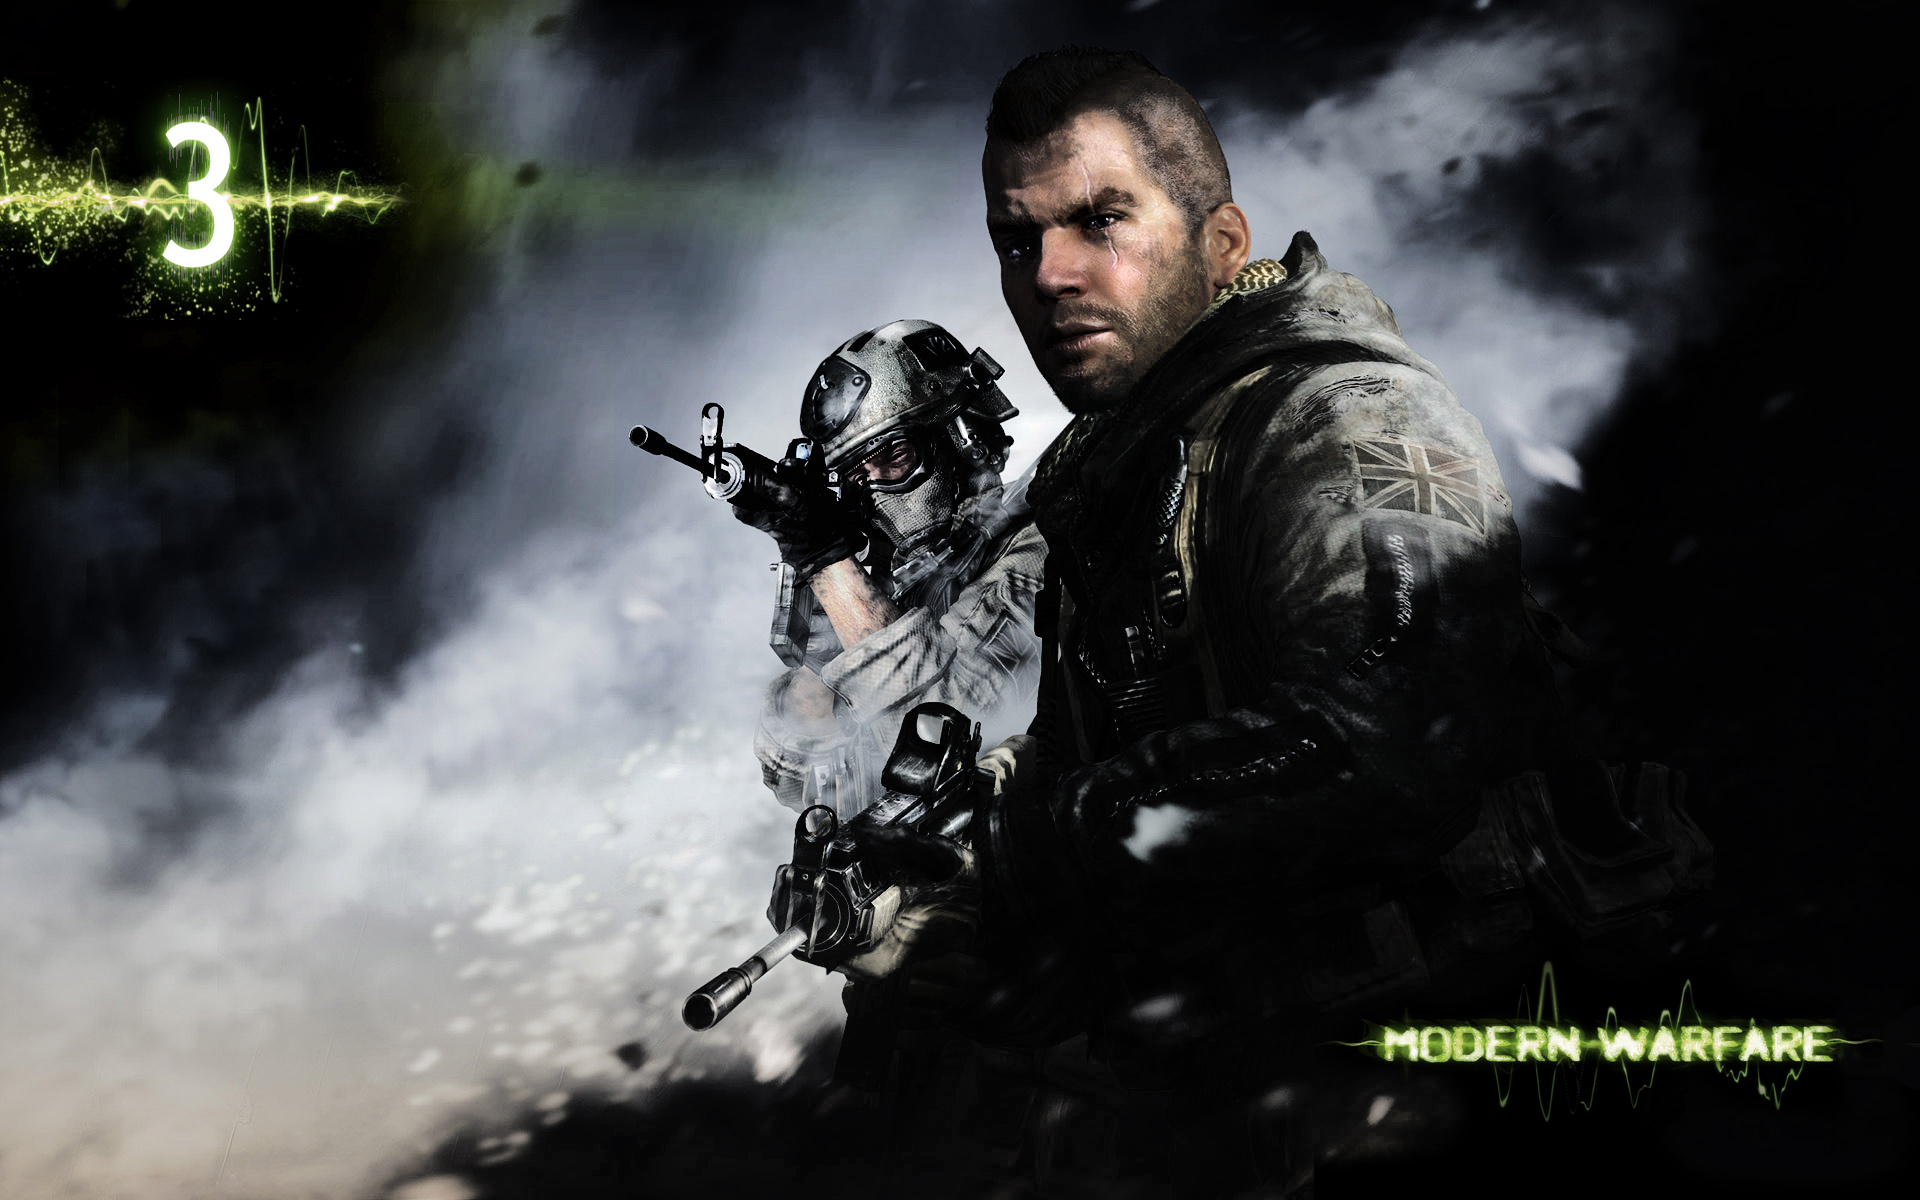 Modern Warfare 3 Images Mw3 Wallpapers HD Wallpaper And Background Photos